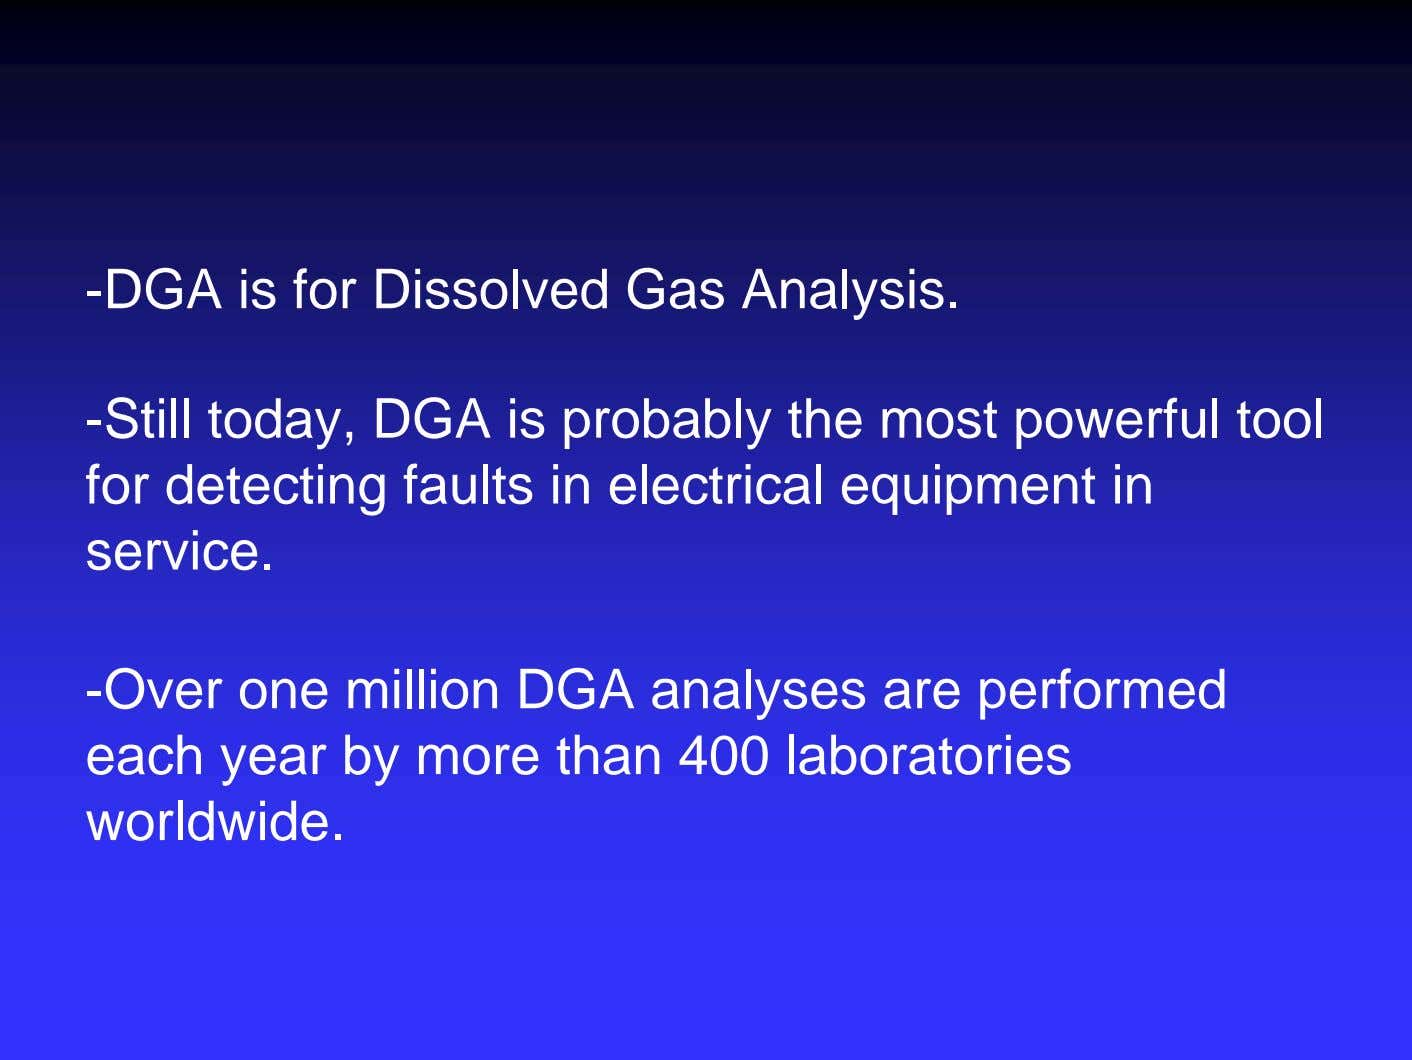 -DGA is for Dissolved Gas Analysis. -Still today, DGA is probably the most powerful tool